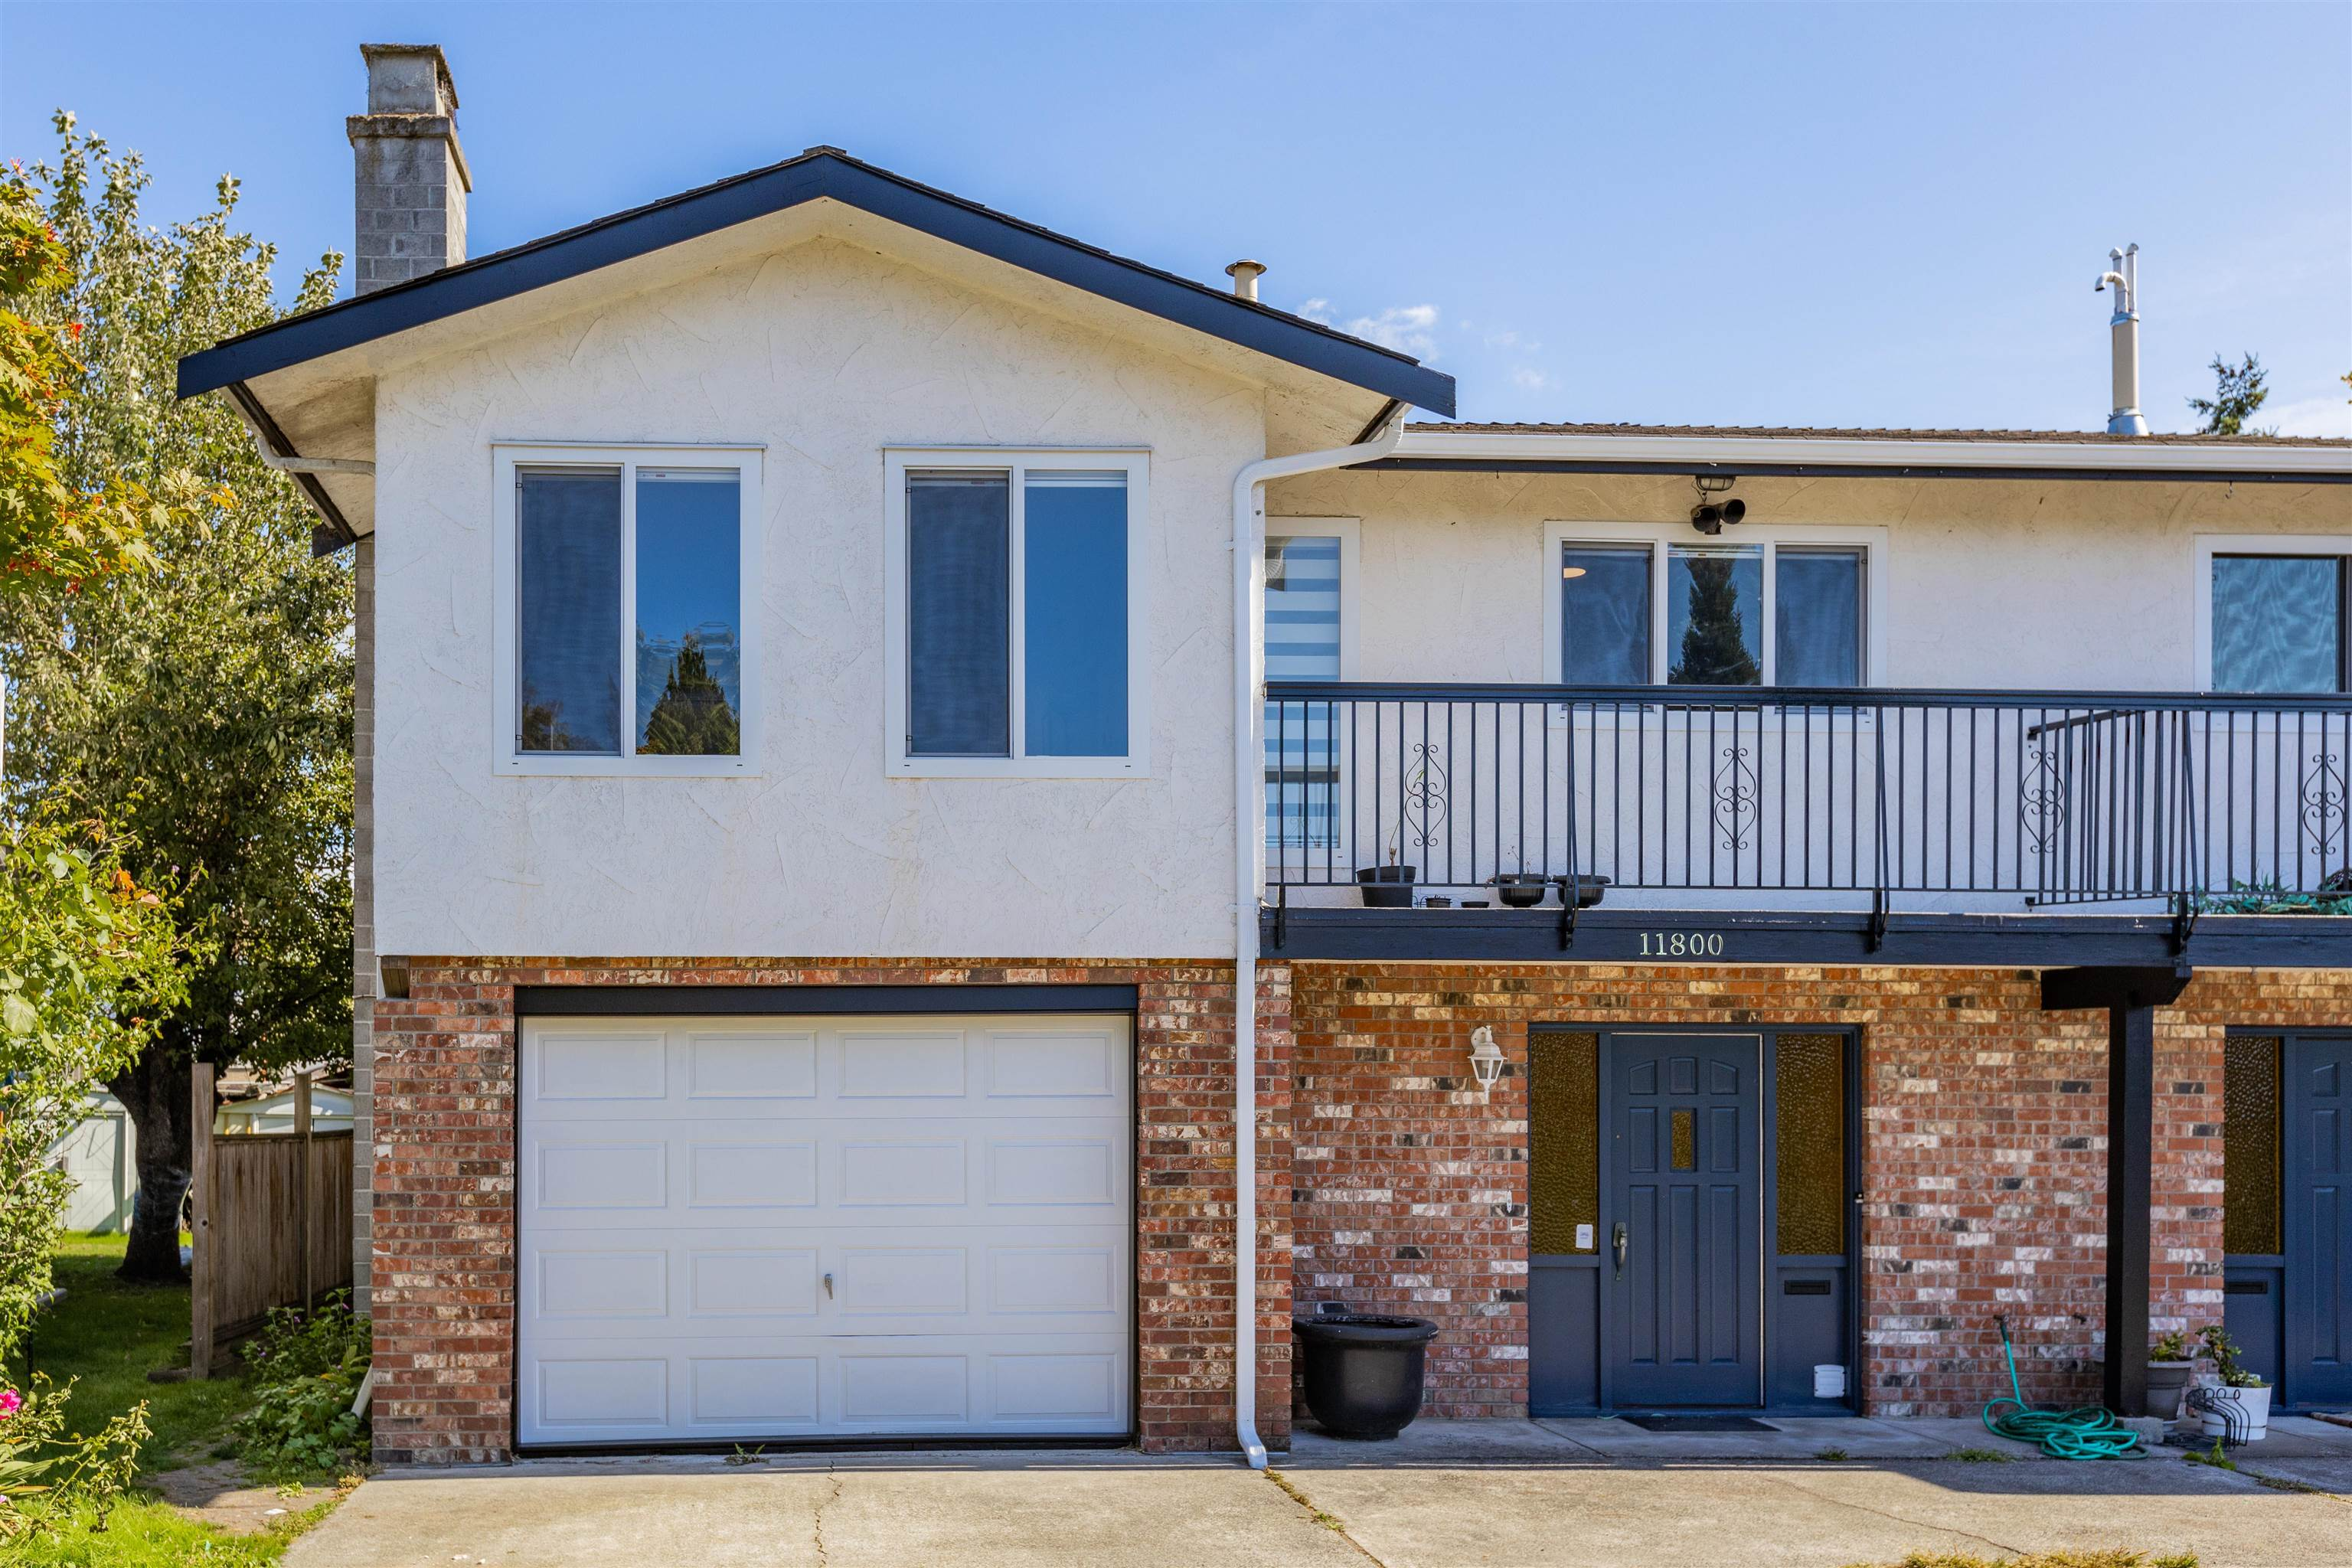 11800 SEATON ROAD - Ironwood 1/2 Duplex for sale, 4 Bedrooms (R2619334)